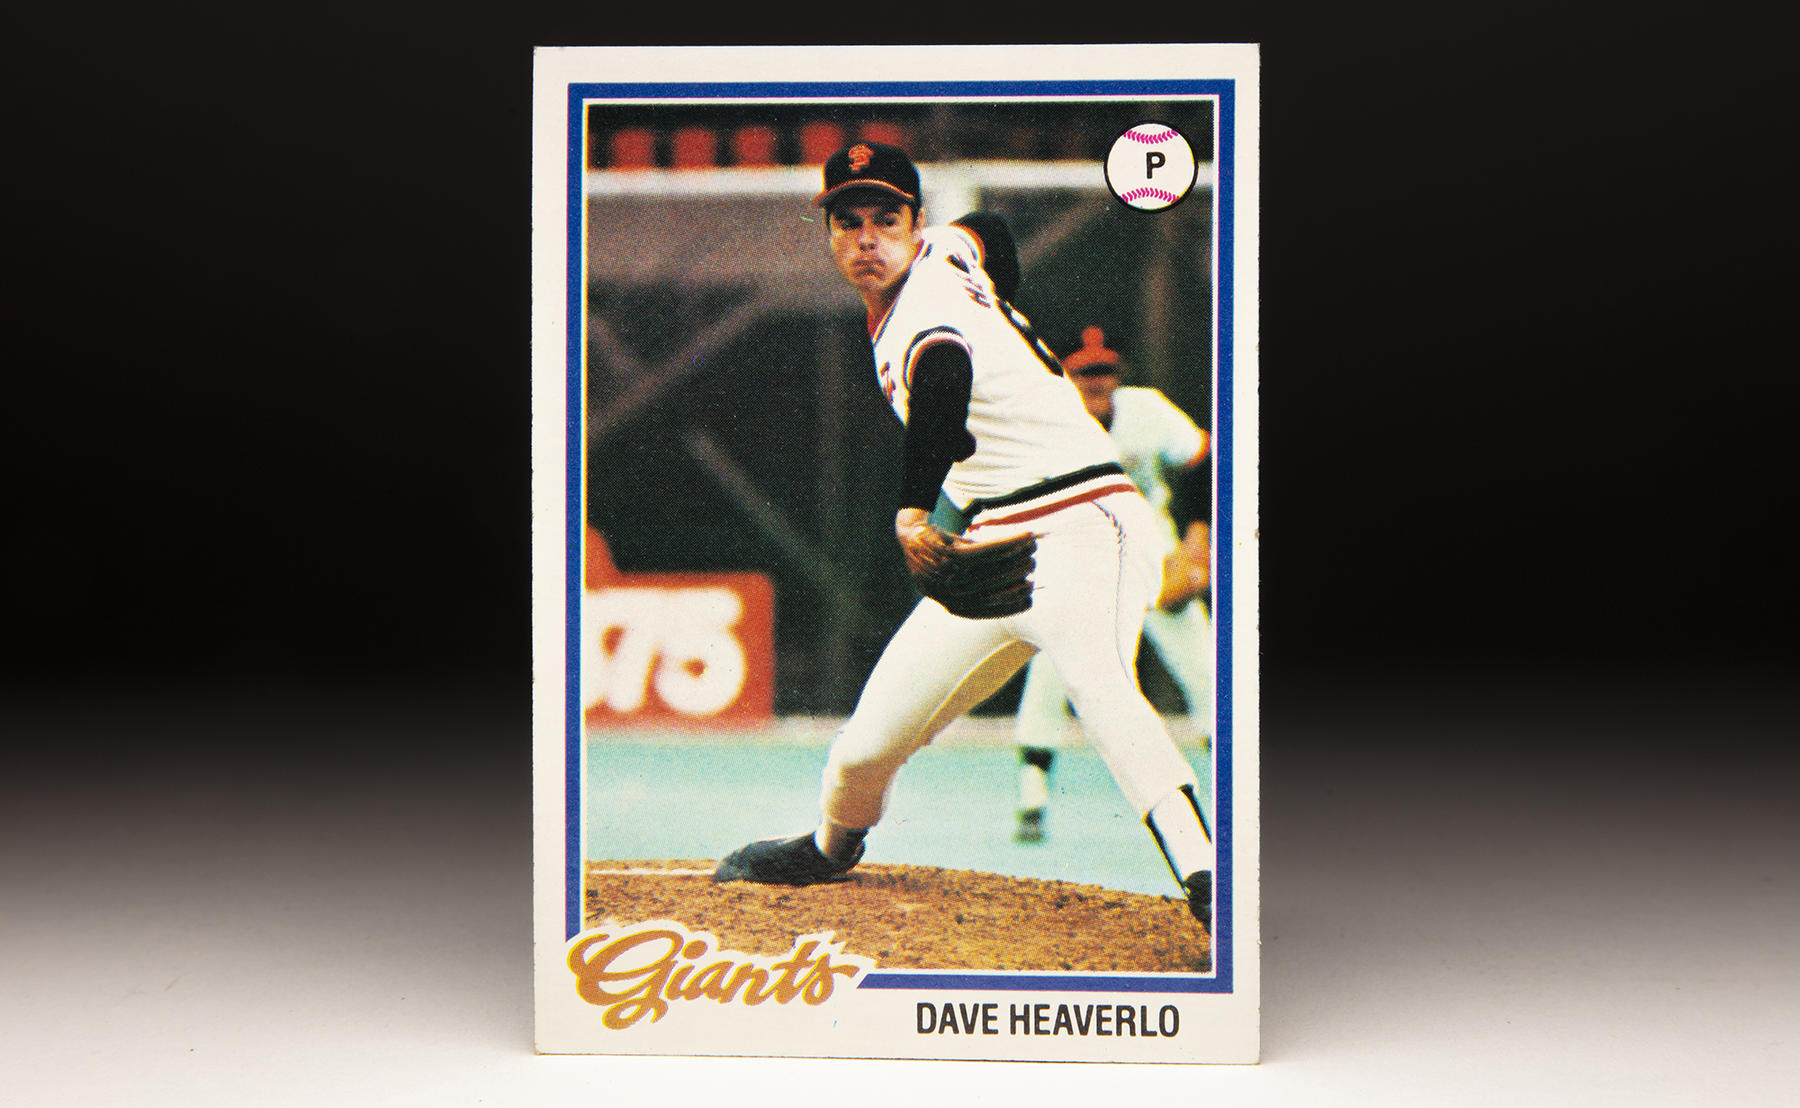 Dave Heaverlo's 1978 Topps card features his distinctive sidearm delivery shot from the third base dugout at Candlestick Park. (Milo Stewart Jr./National Baseball Hall of Fame and Museum)